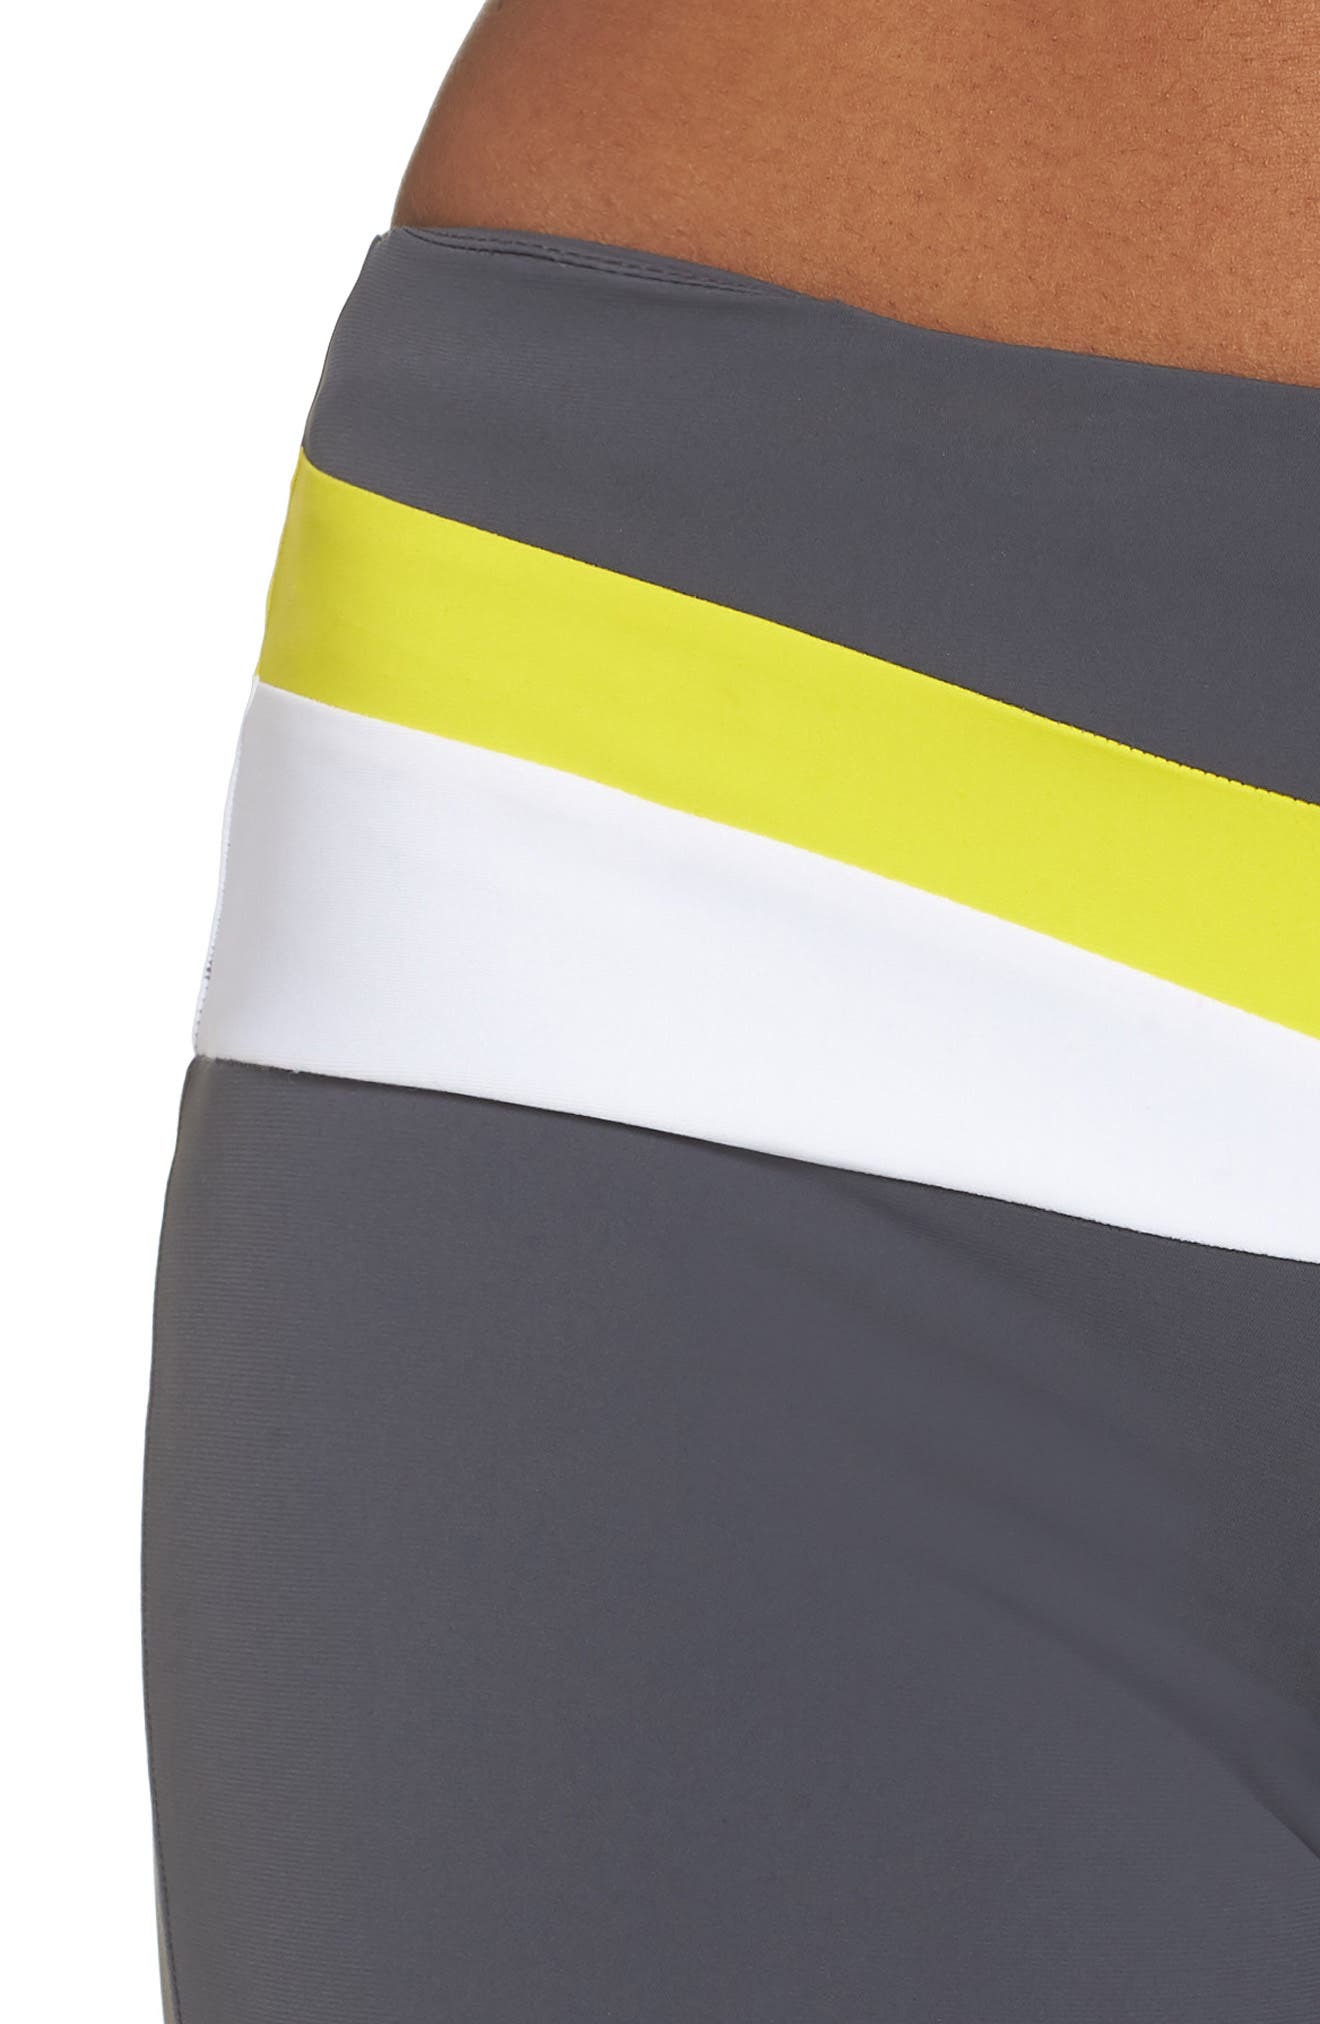 BoomBoom Athletica Tricolor Leggings,                             Alternate thumbnail 4, color,                             GREY/ WHITE/ YELLOW